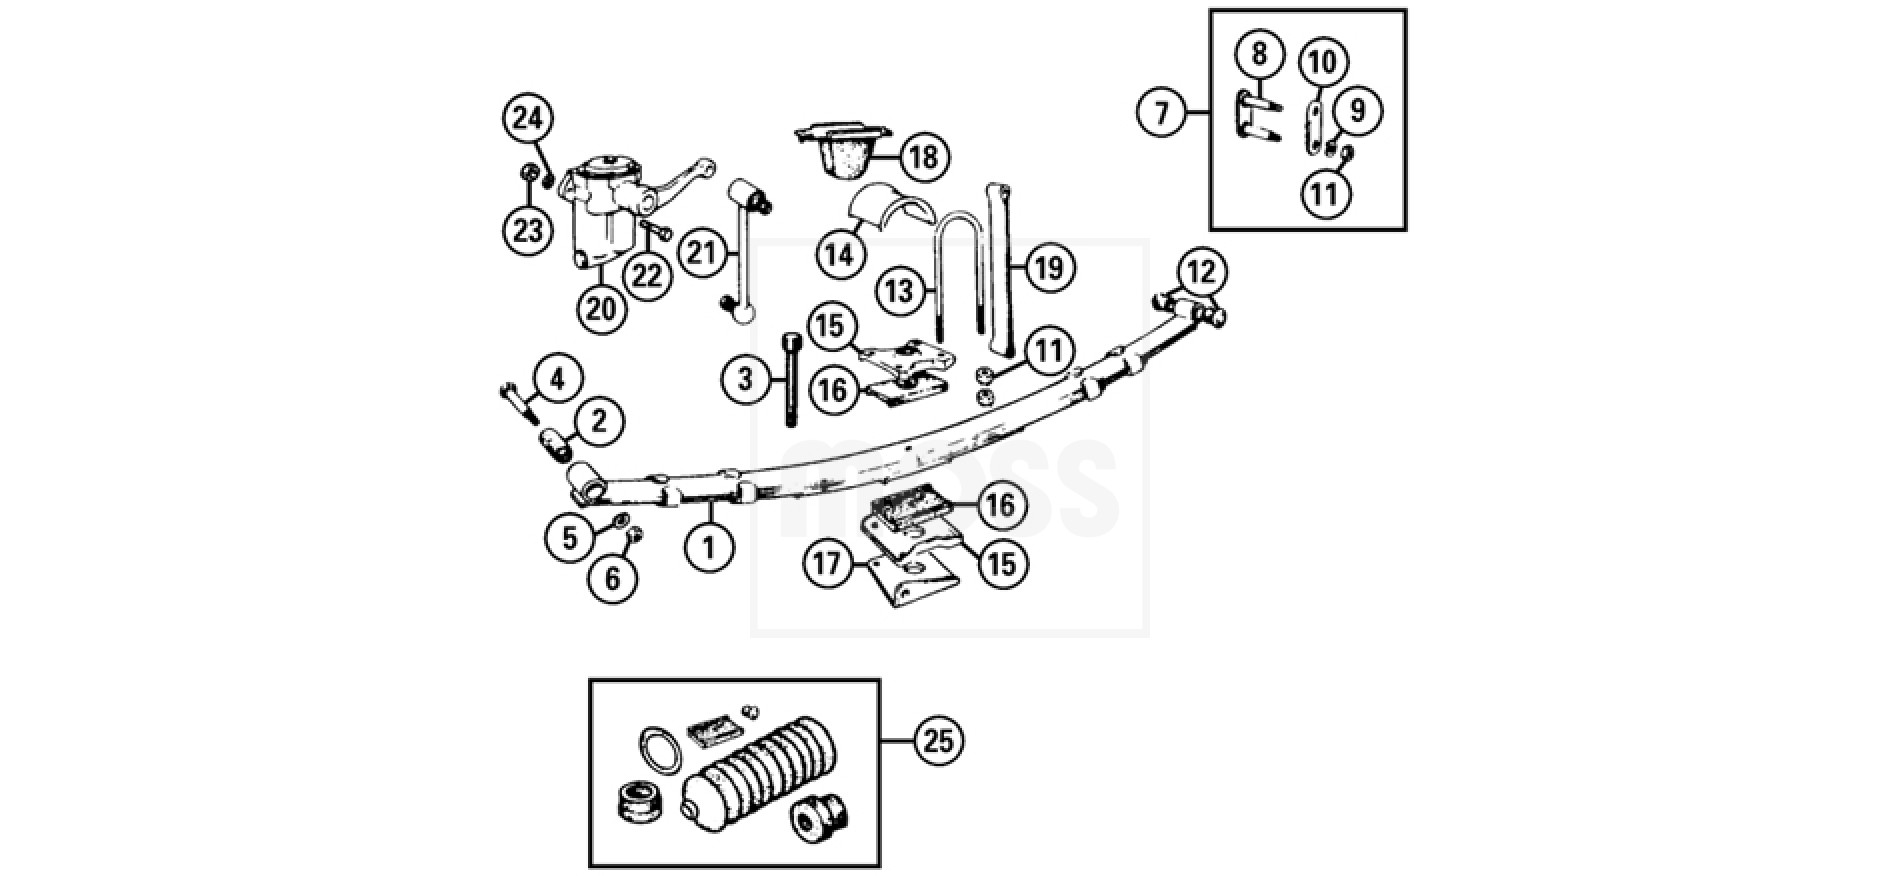 04 Bmw M3 Fuse Box. Bmw. Wiring Diagram Gallery